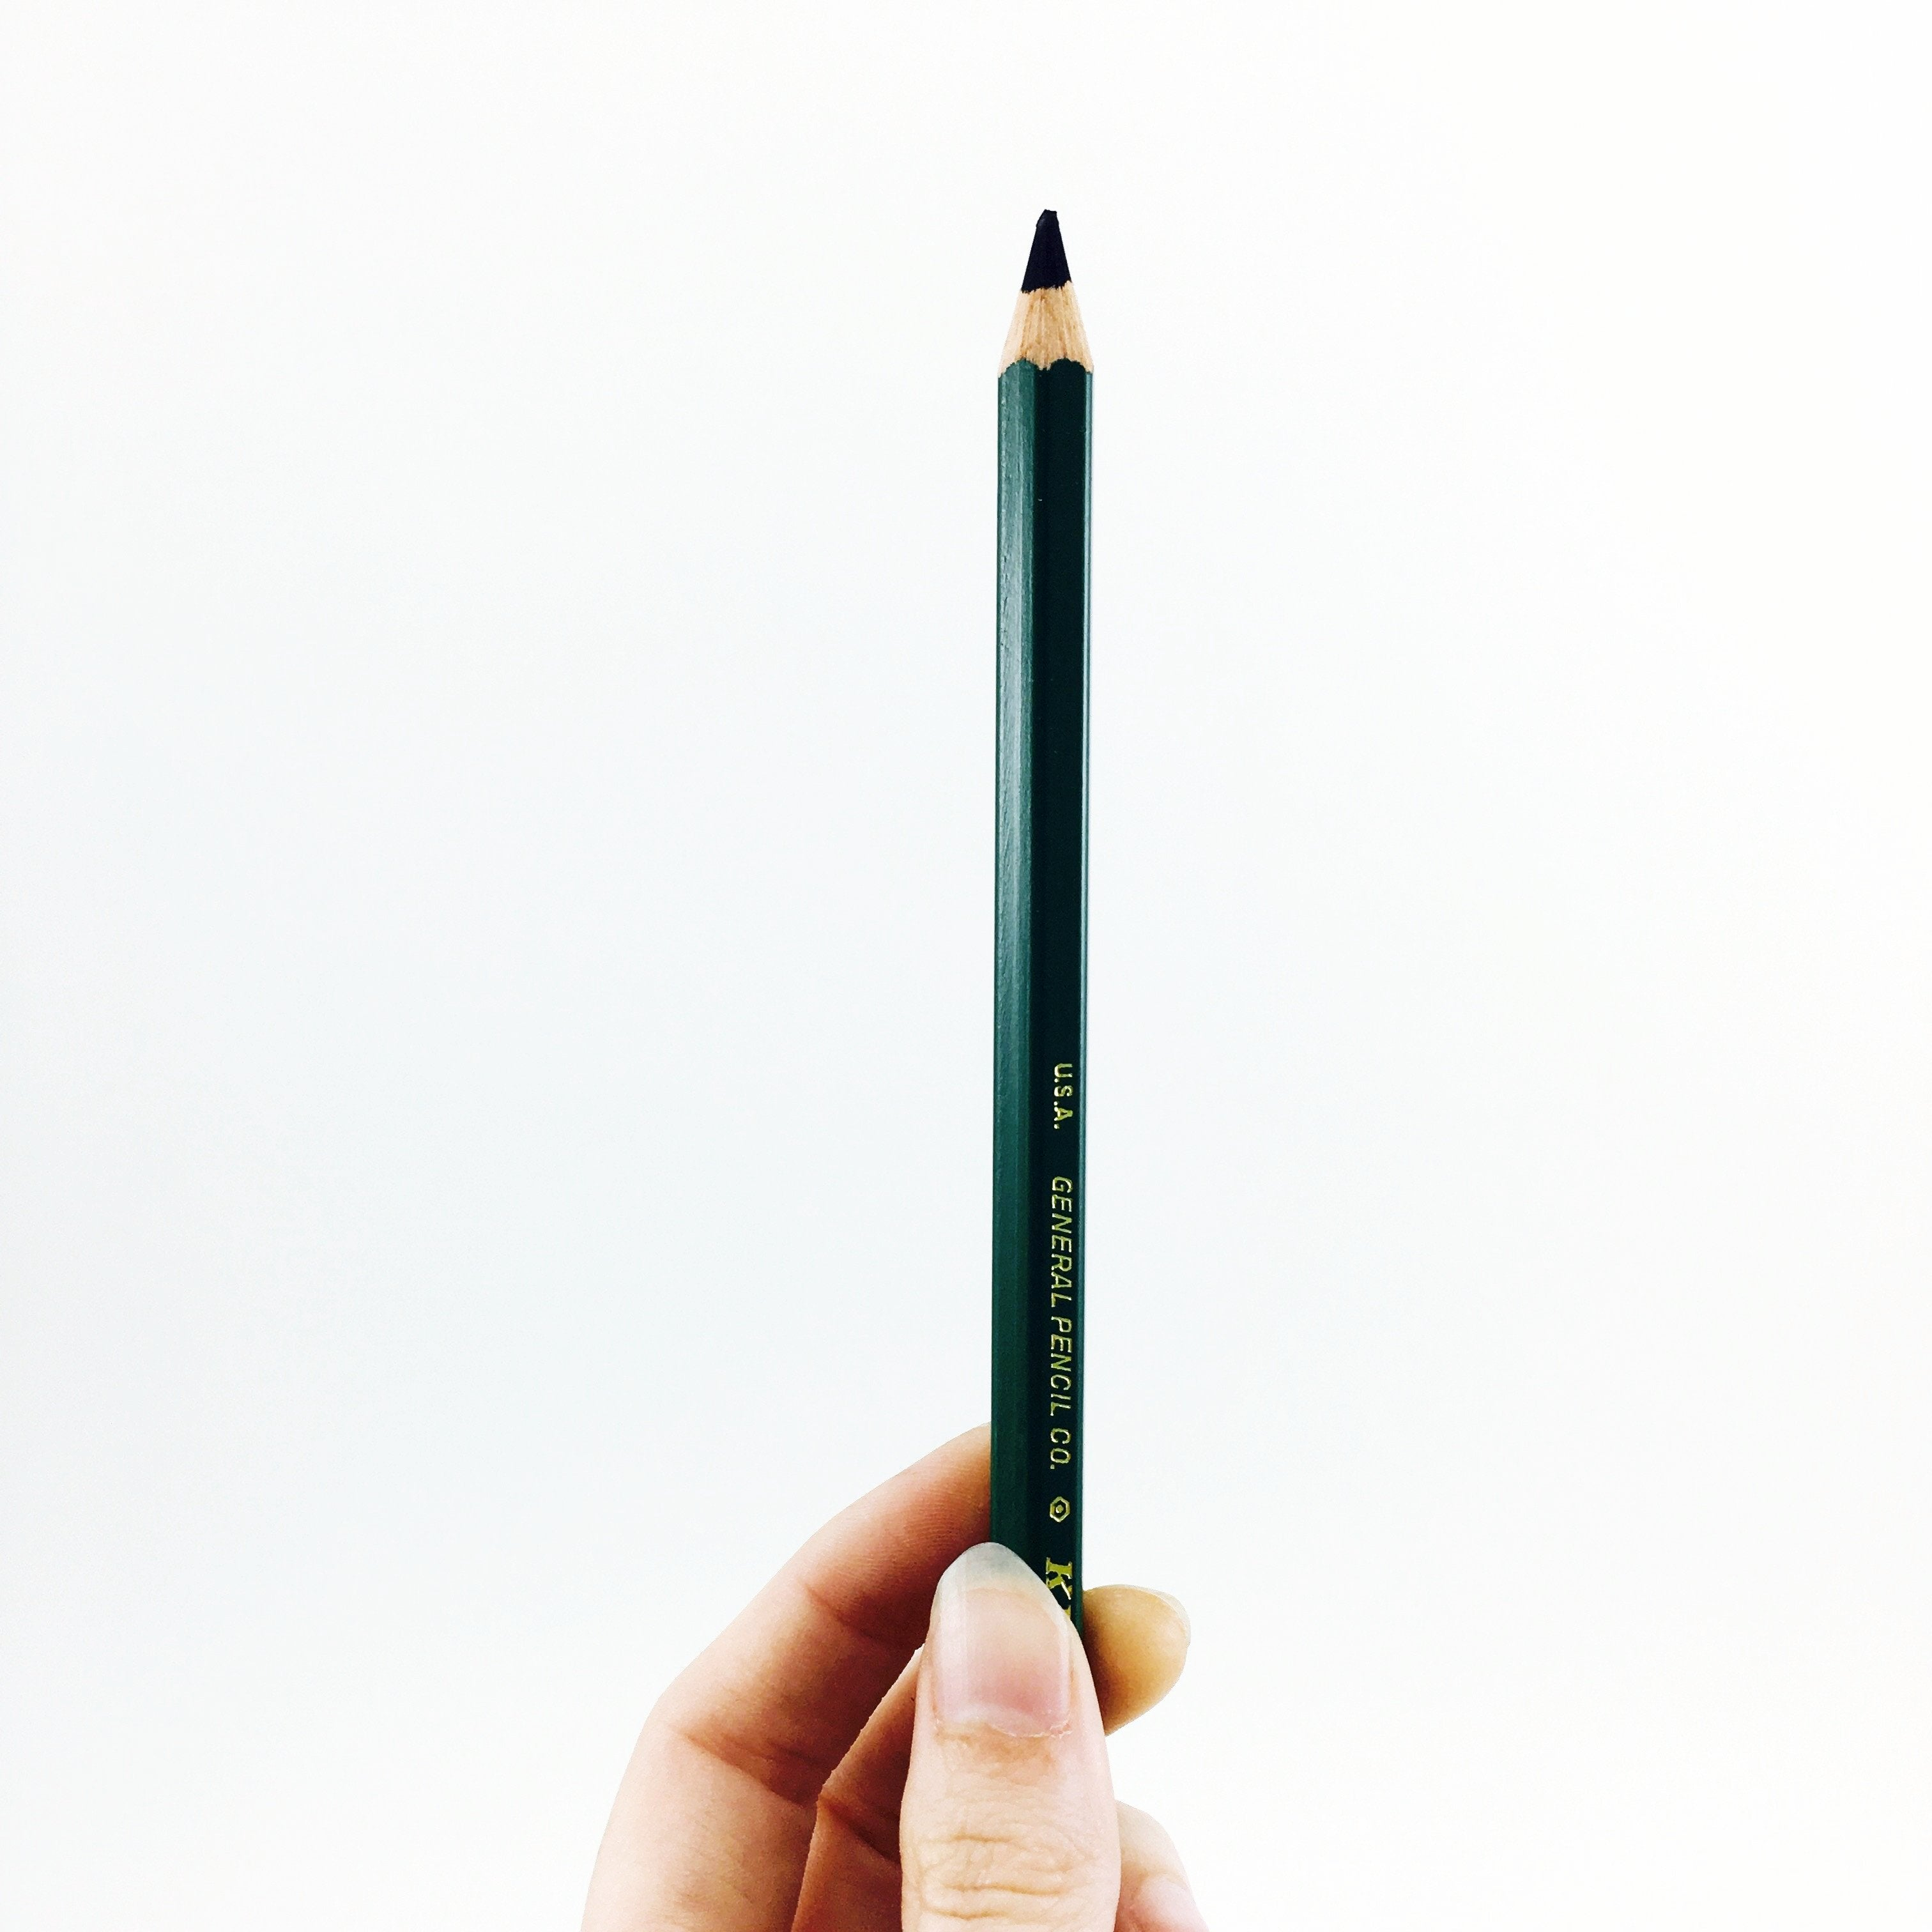 General's Kimberly Drawing Pencil - by General's - K. A. Artist Shop